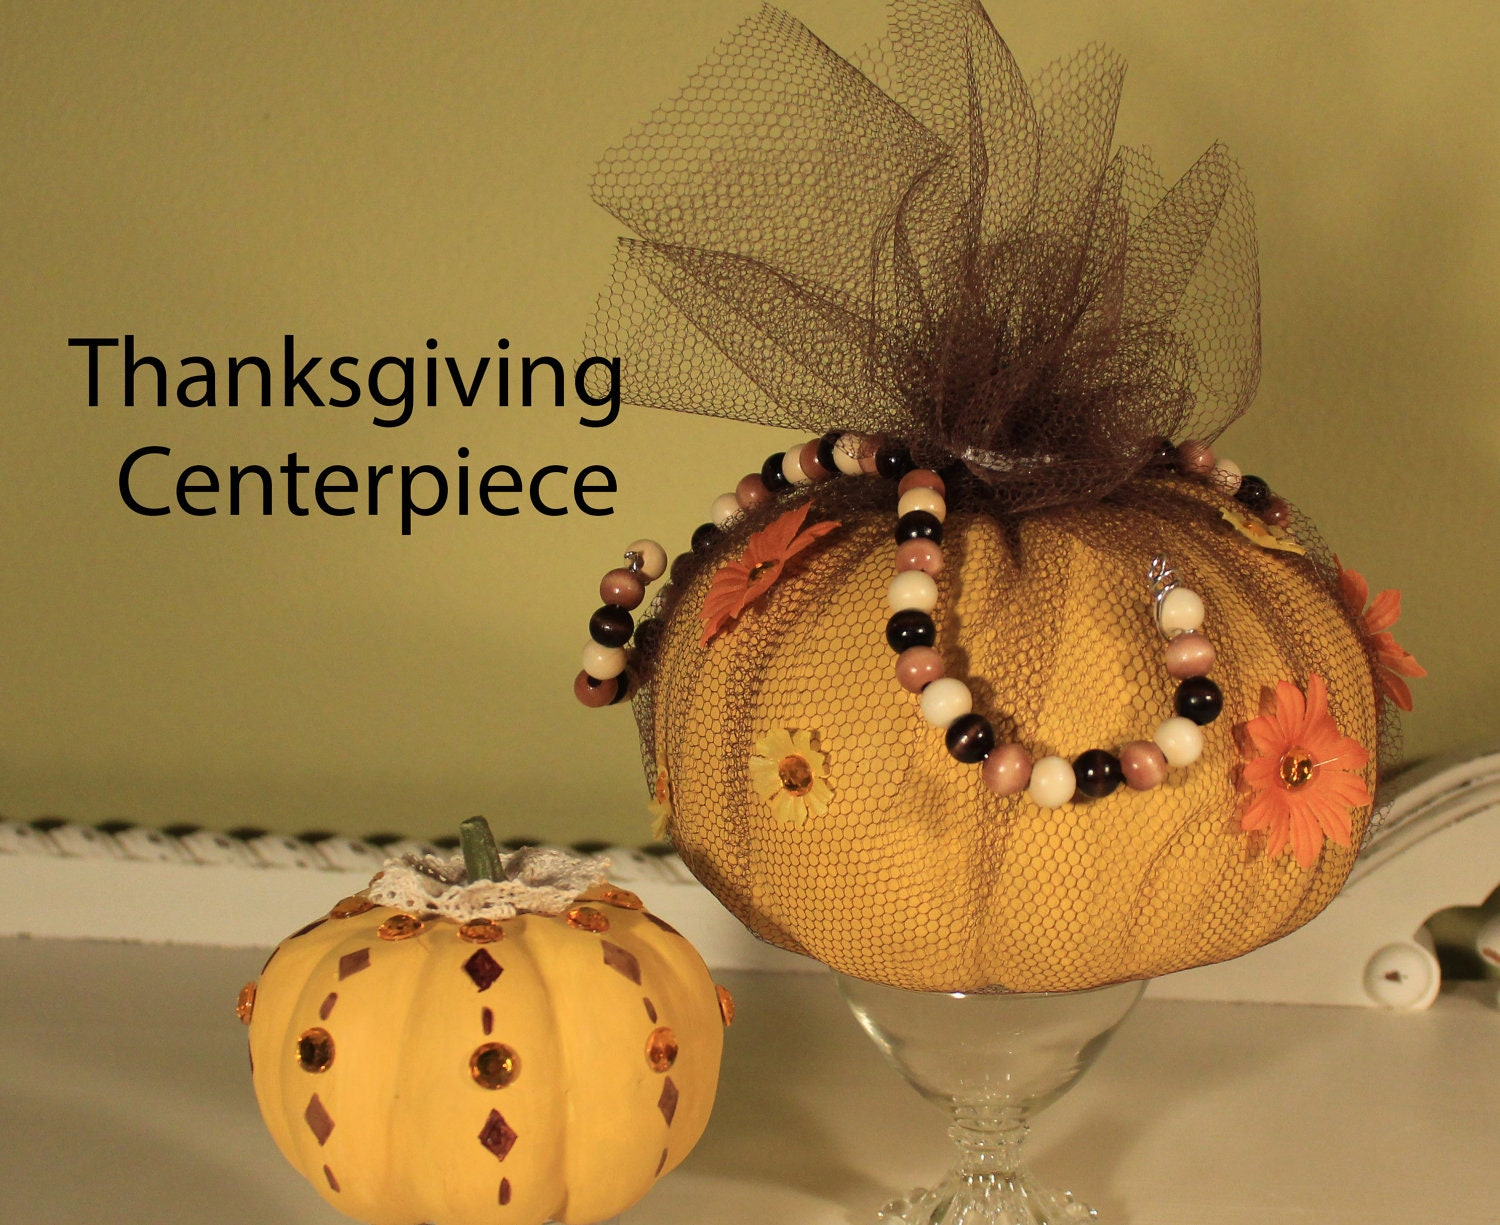 Two Thanksgiving pumpkins in a shabby chic style, shabby chic centerpiece, cottage chic Halloween, shabby chic Thanksgiving, lace and beads - SugarNotes